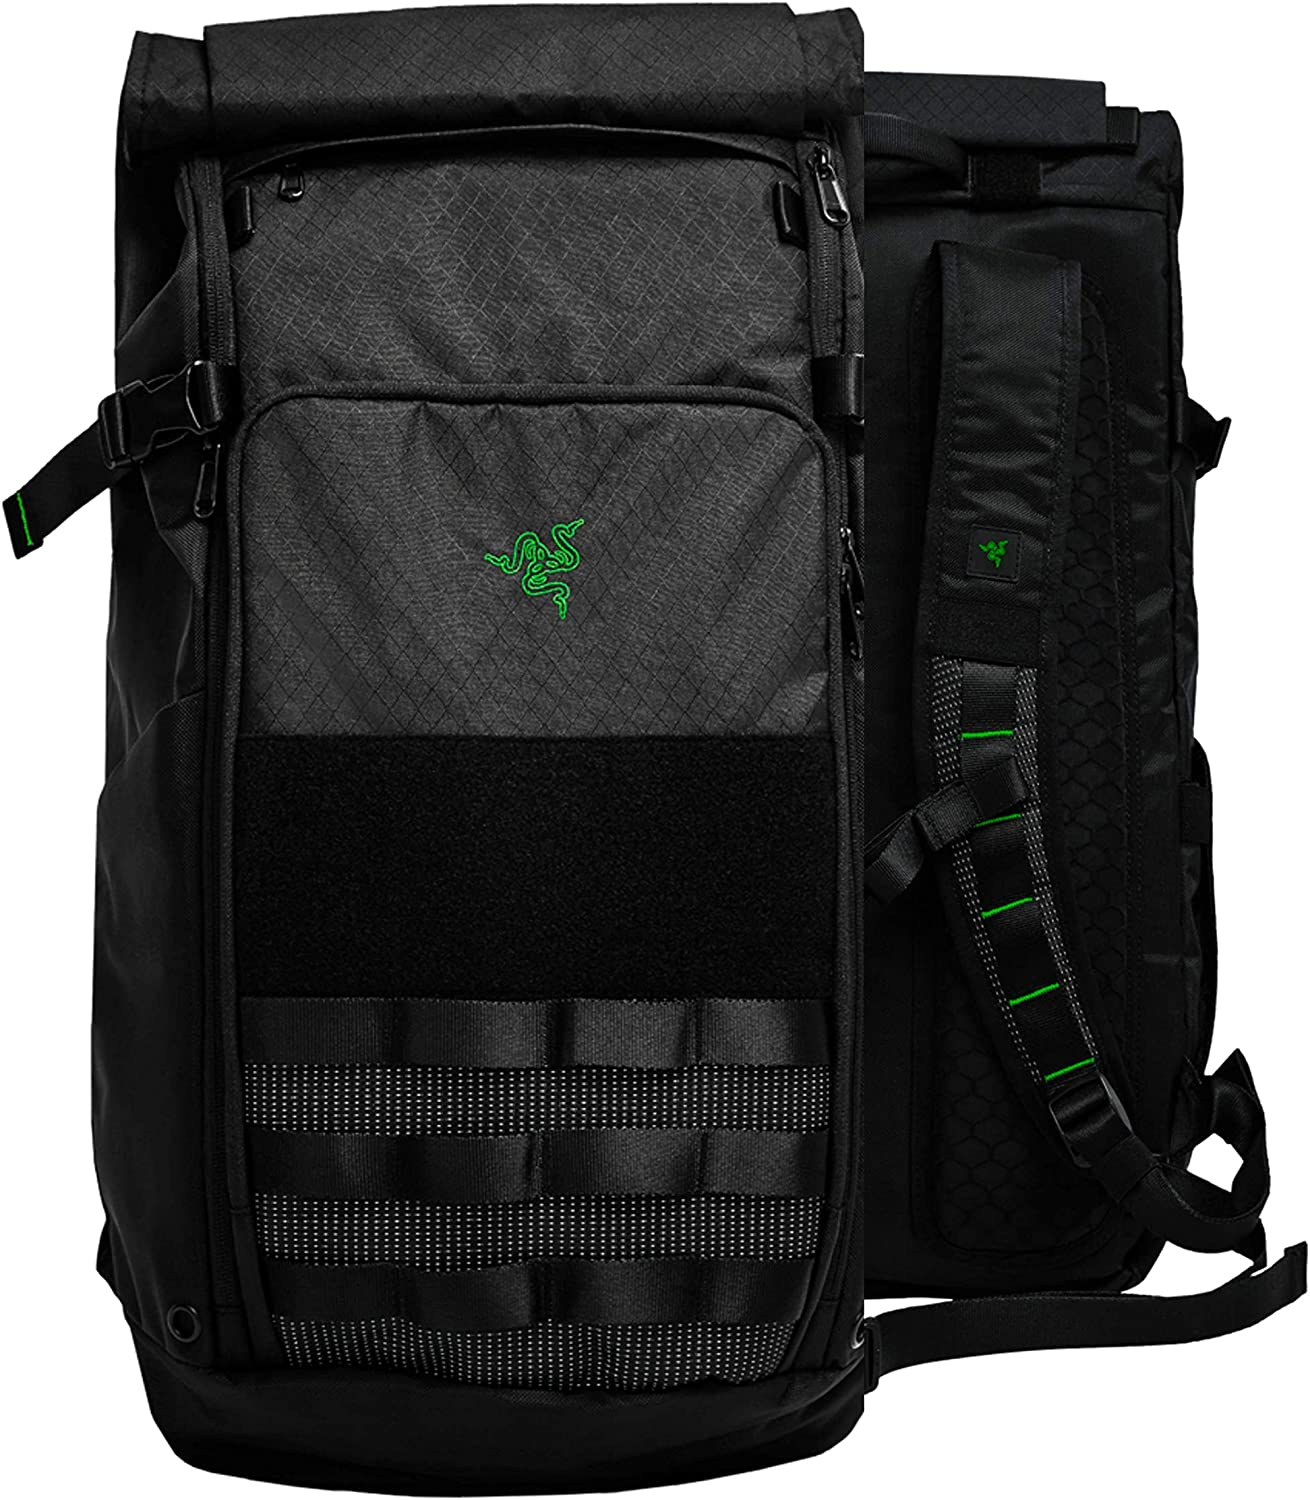 "Razer Tactical v2 17"" Laptop Backpack: Tear & Water Resistant Exterior - Roll Top for Increased Capacity - Scratch-Proof Interior - Fits 15 inch Laptops – Black"